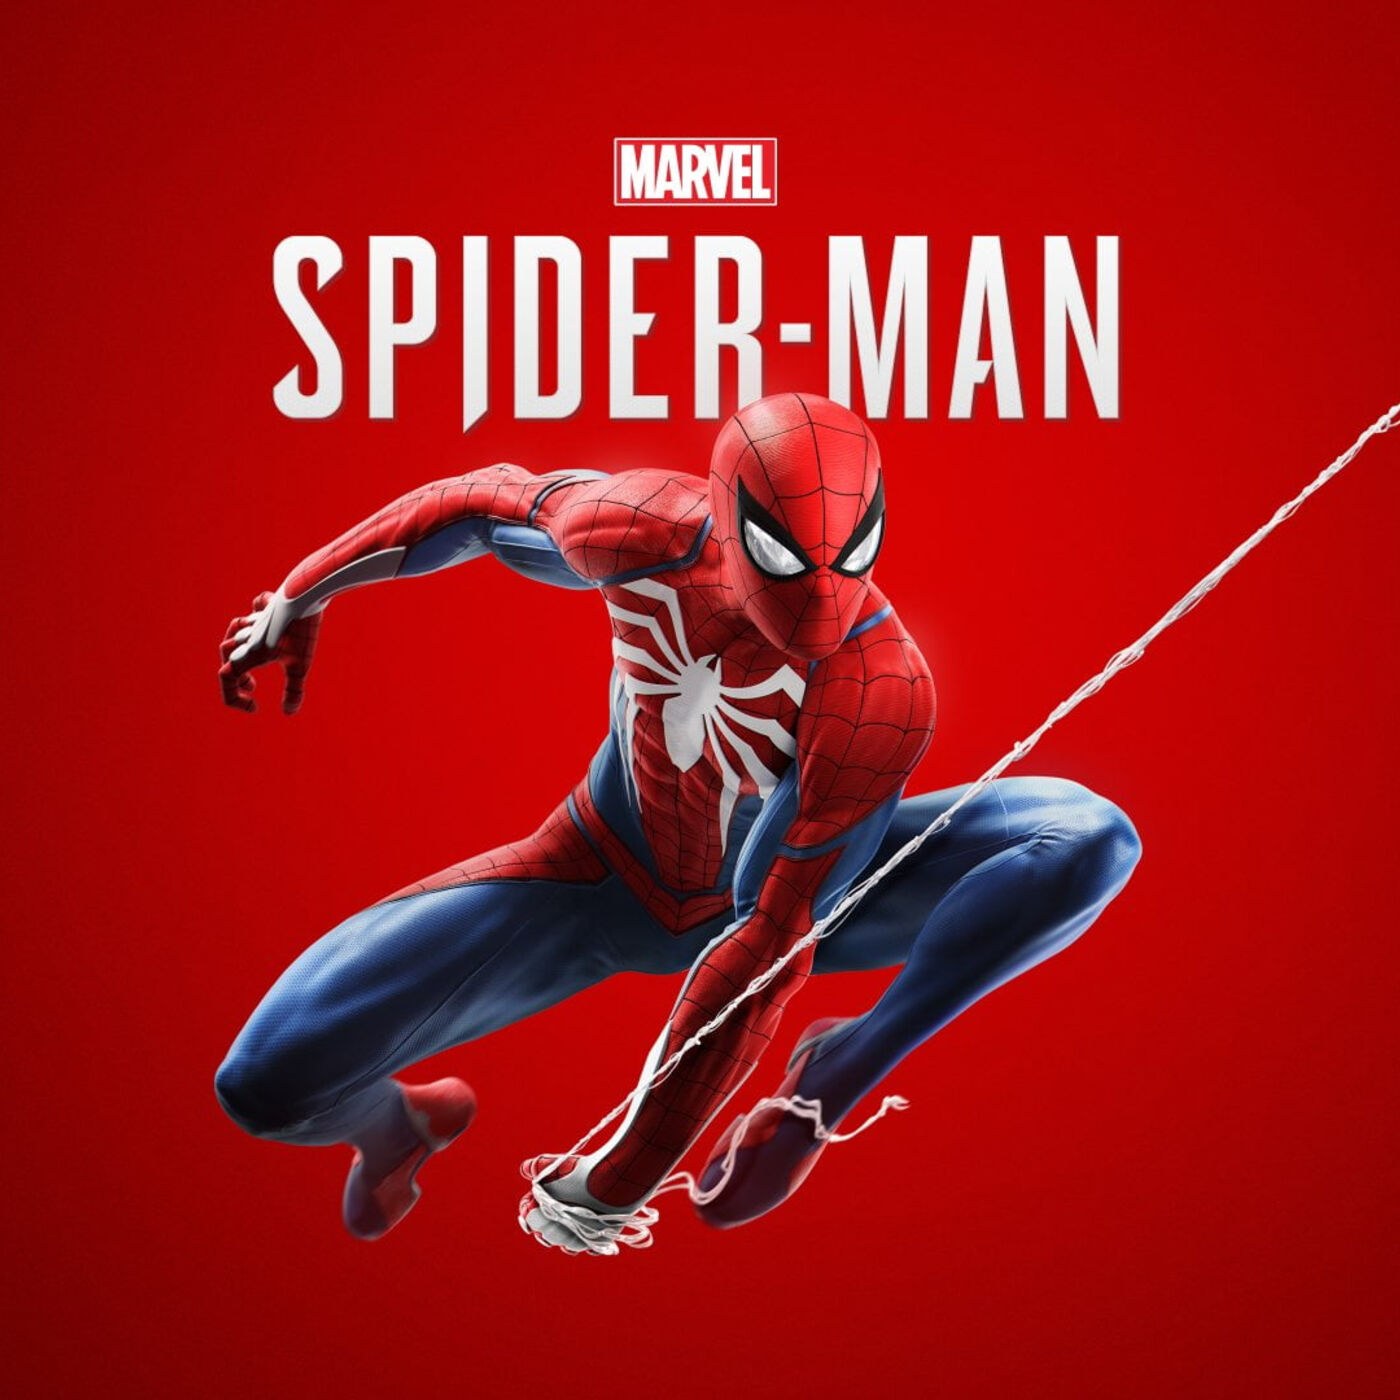 Marvel's Spider-Man (PS4) - feat. Phil Smith